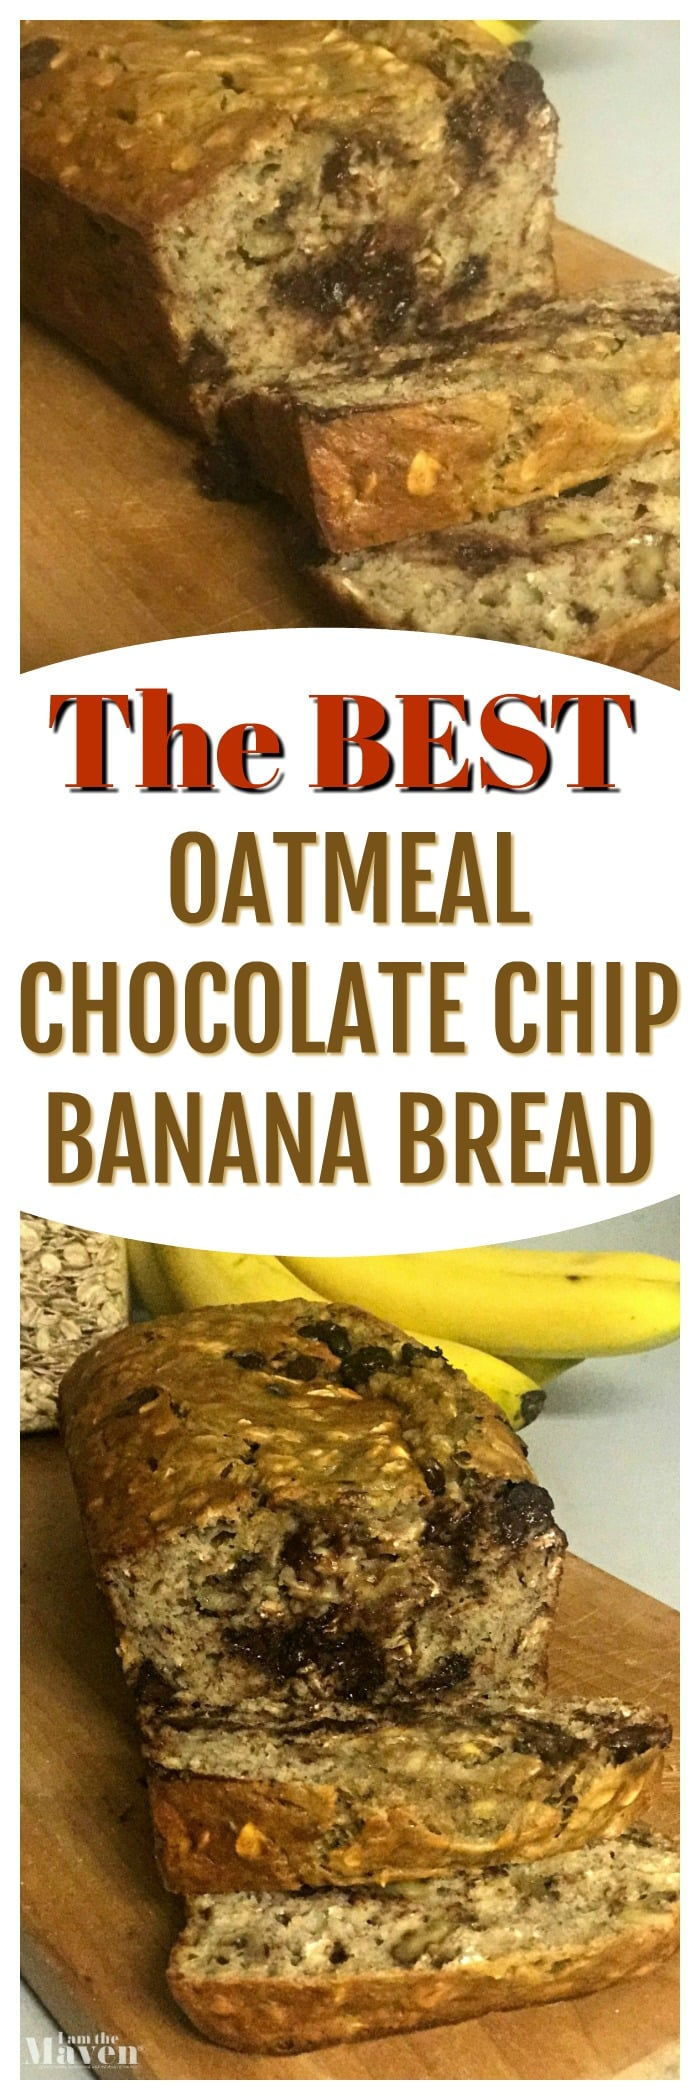 the best oatmeal chocolate chip banana bread